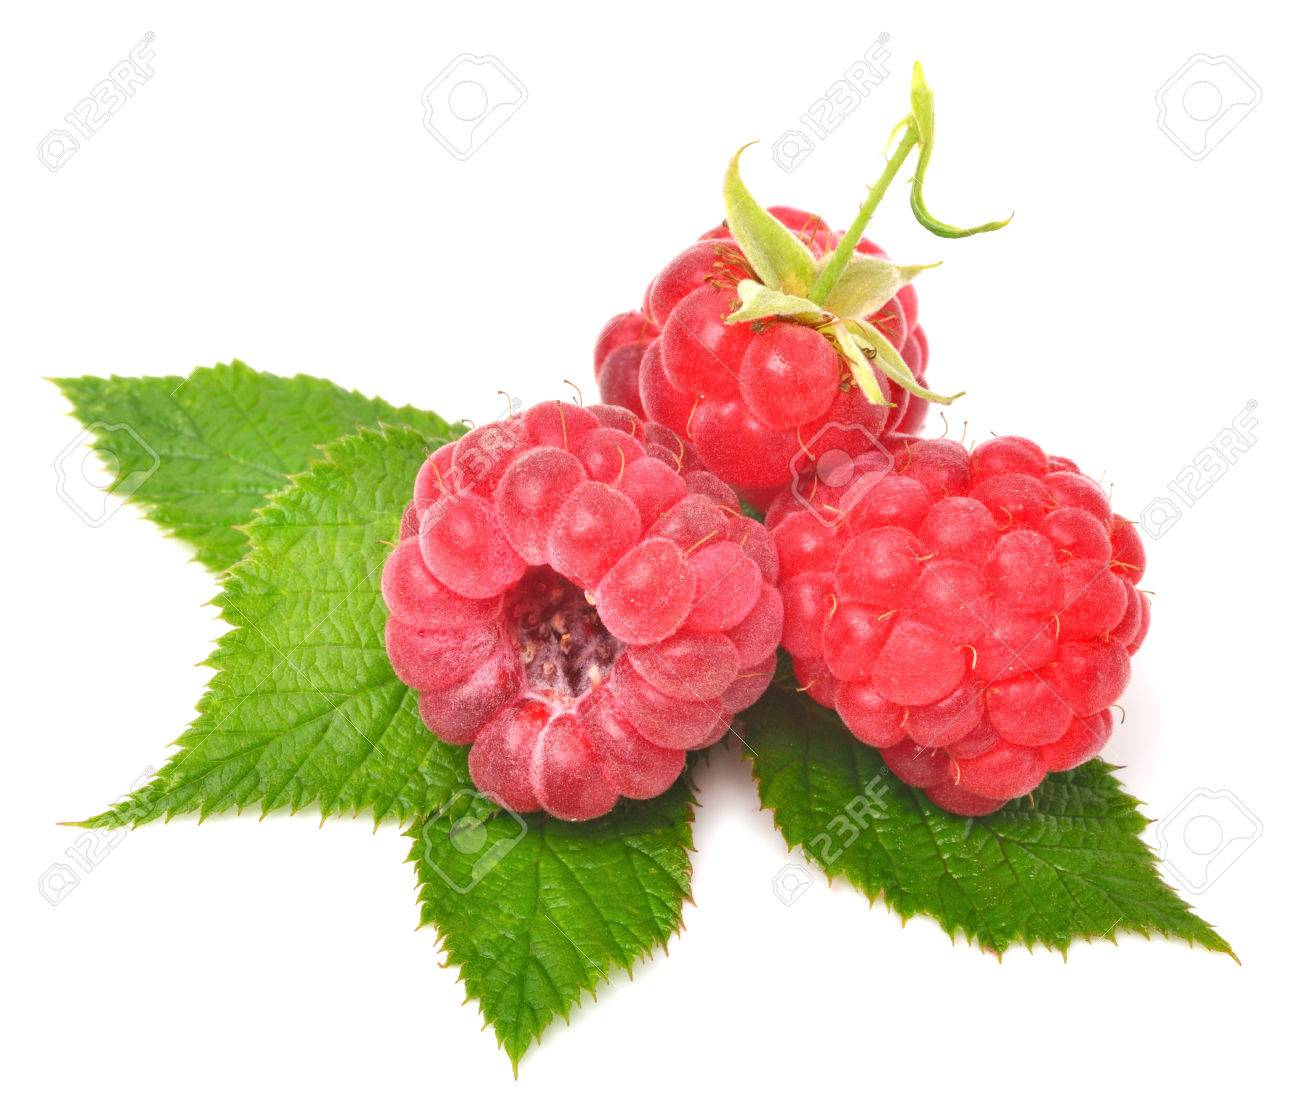 Rasberry with leaves isolated on white - 25026752